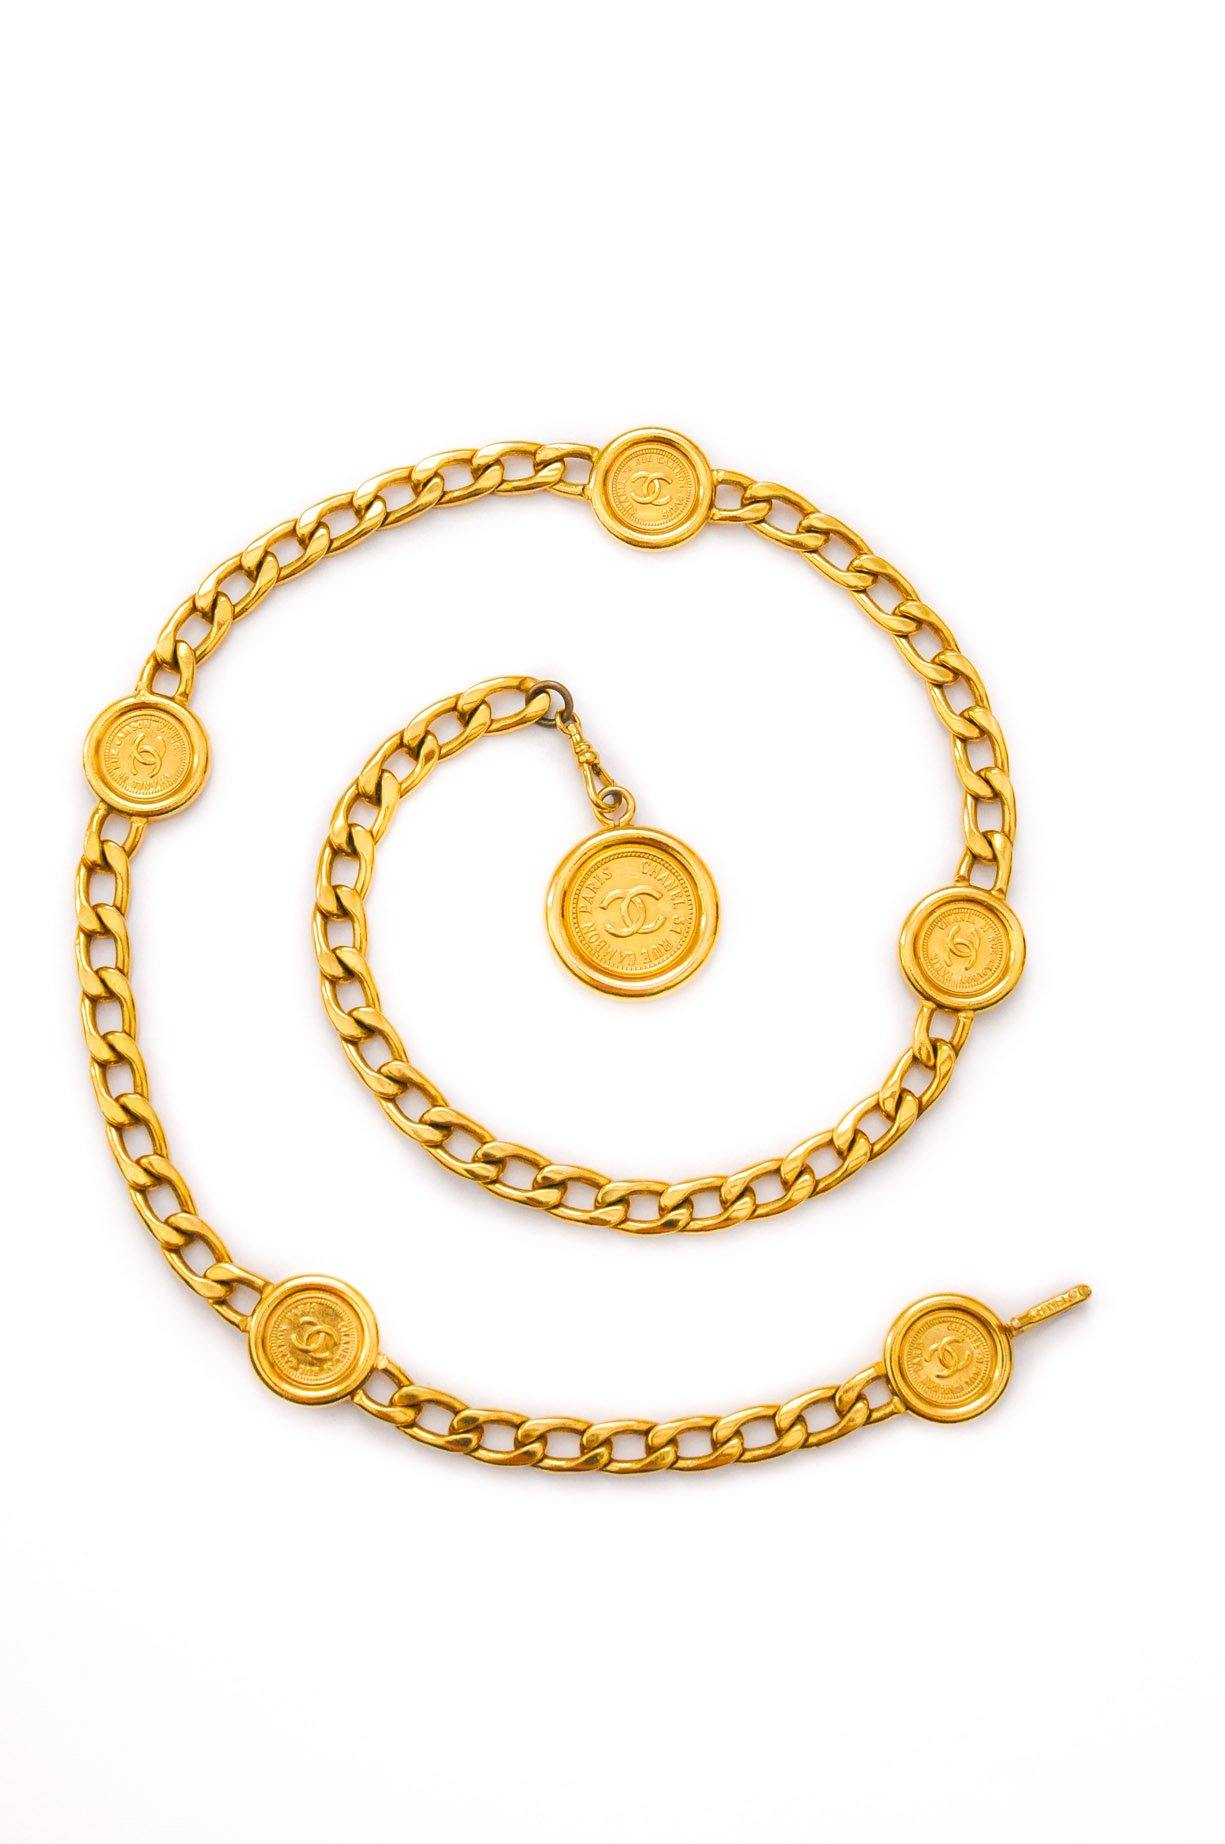 Chanel Coin Chain Belt